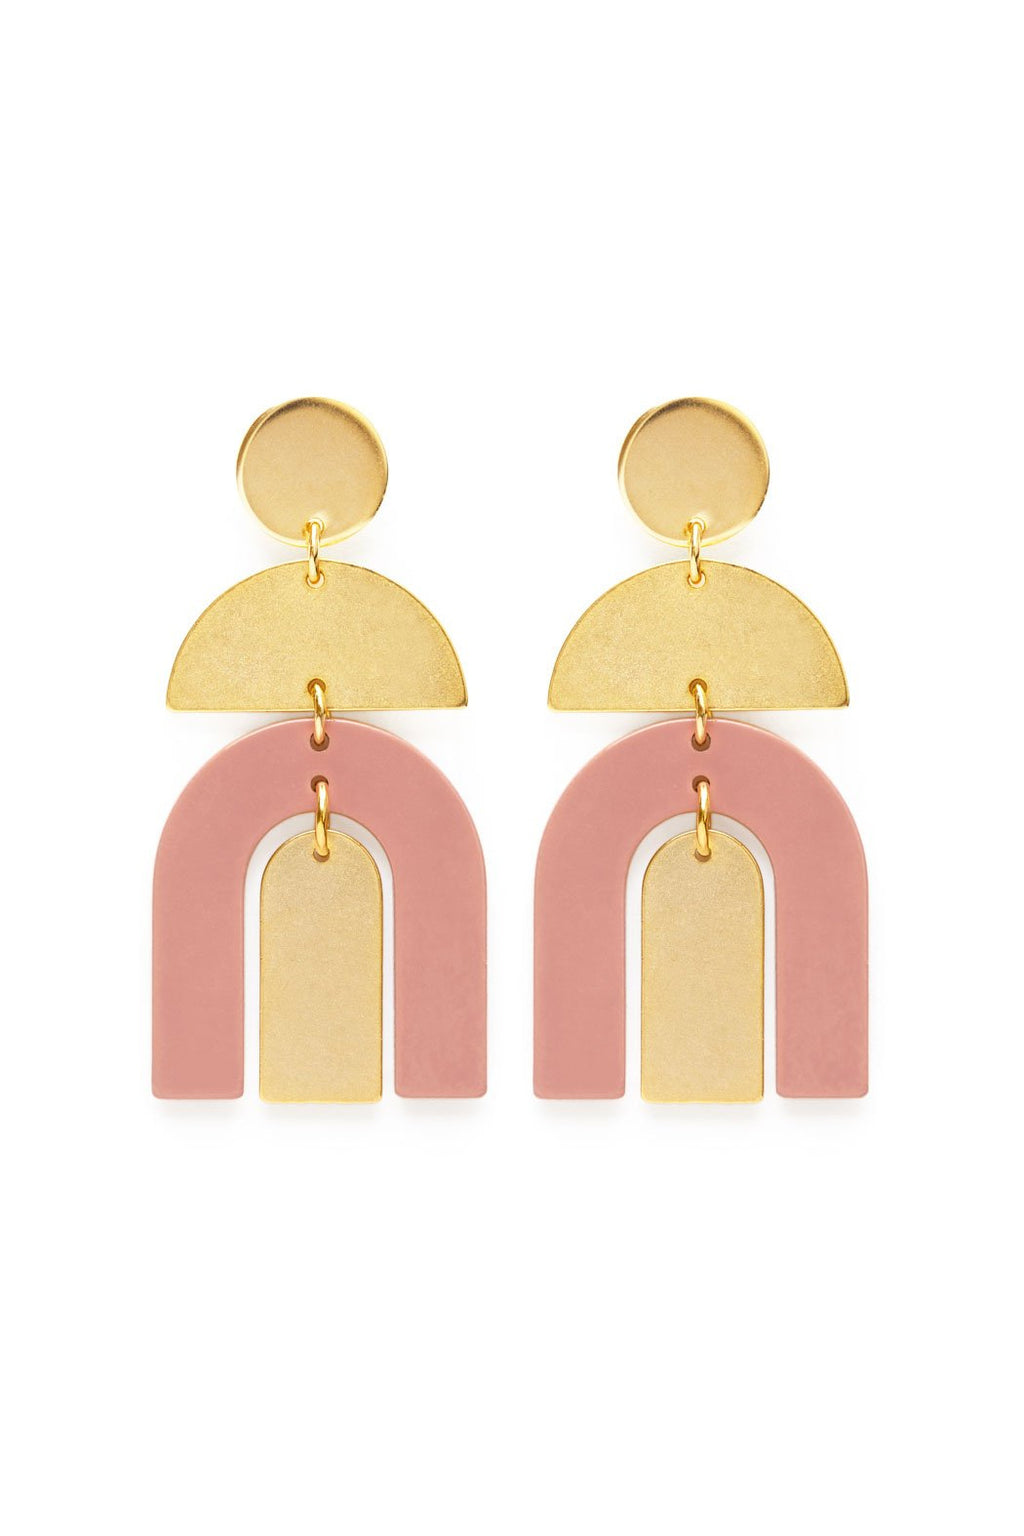 Amano Studio Moab Arches Earrings - Blush